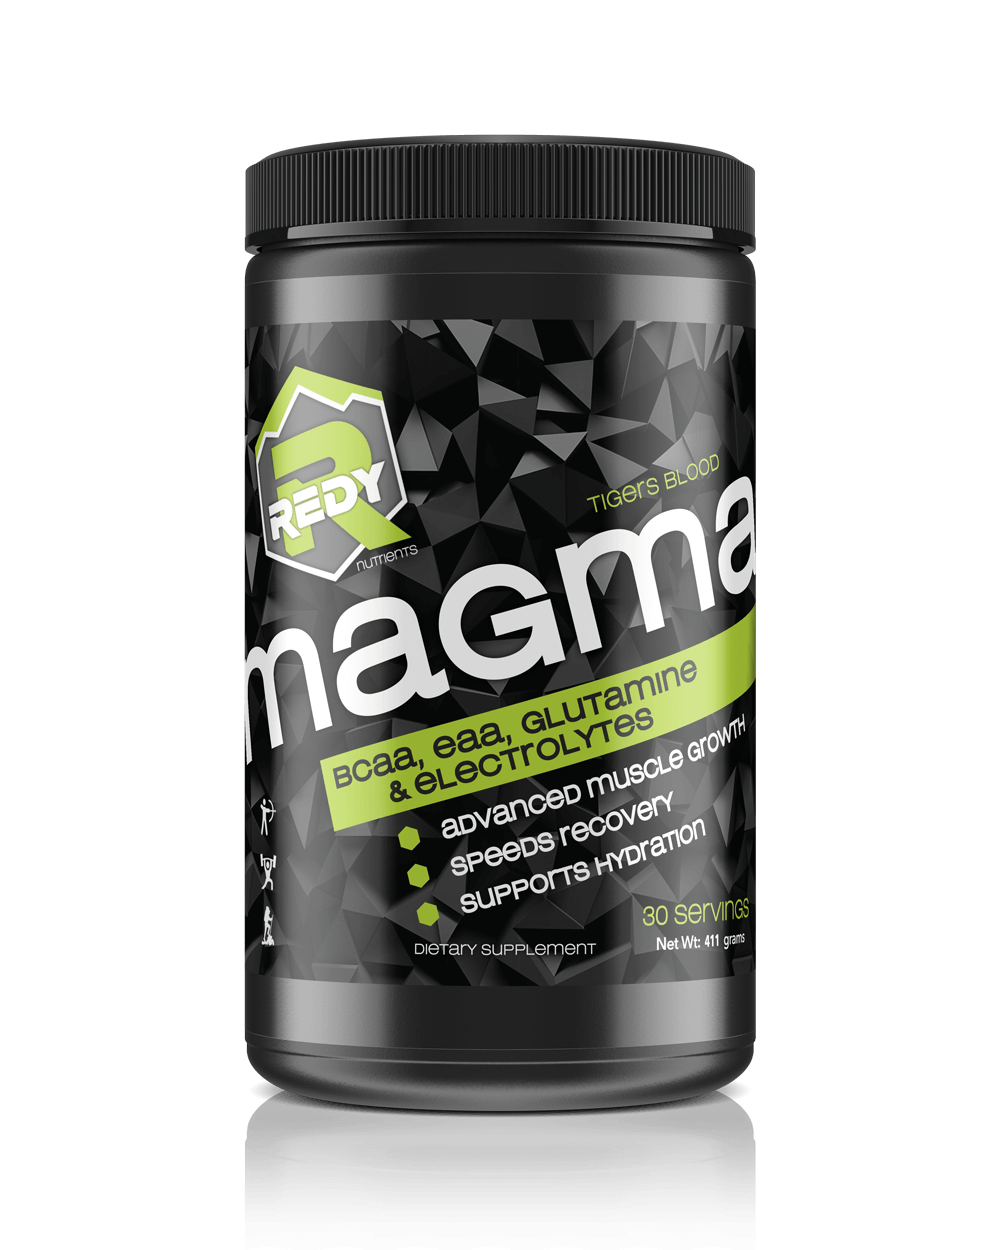 MAGMA-BCAA COMPLEX by Redy Nutrients